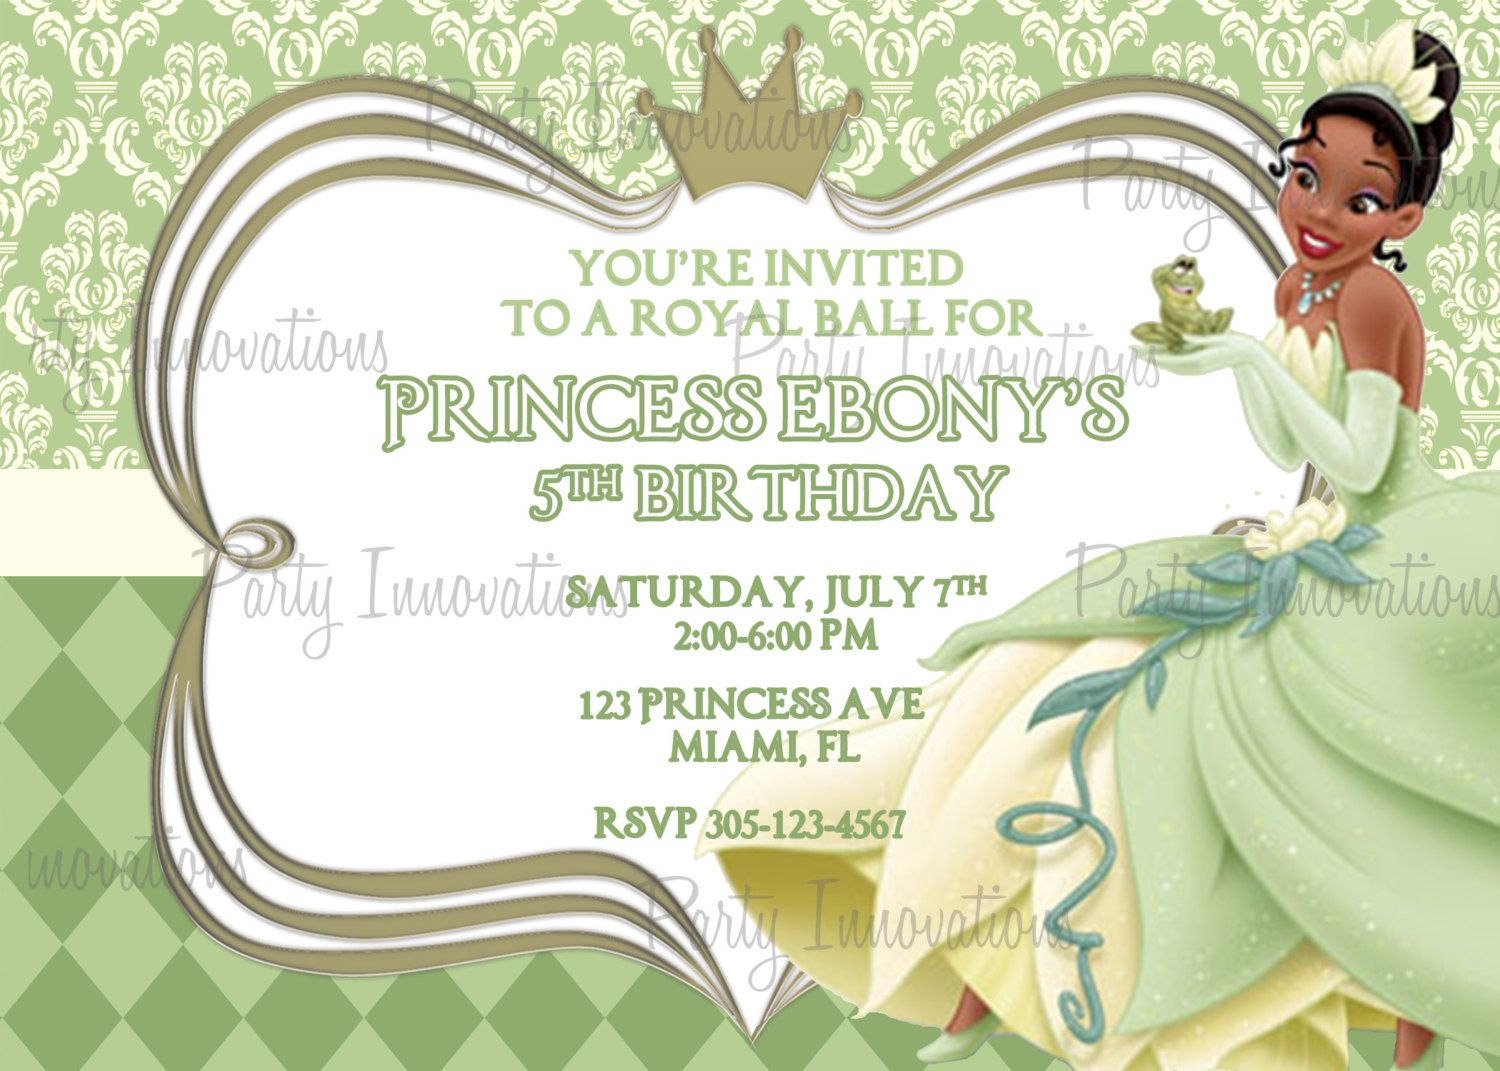 Princess Tiana Invitations Free Princess Tiana Party – Princess Tiana Party Invitations